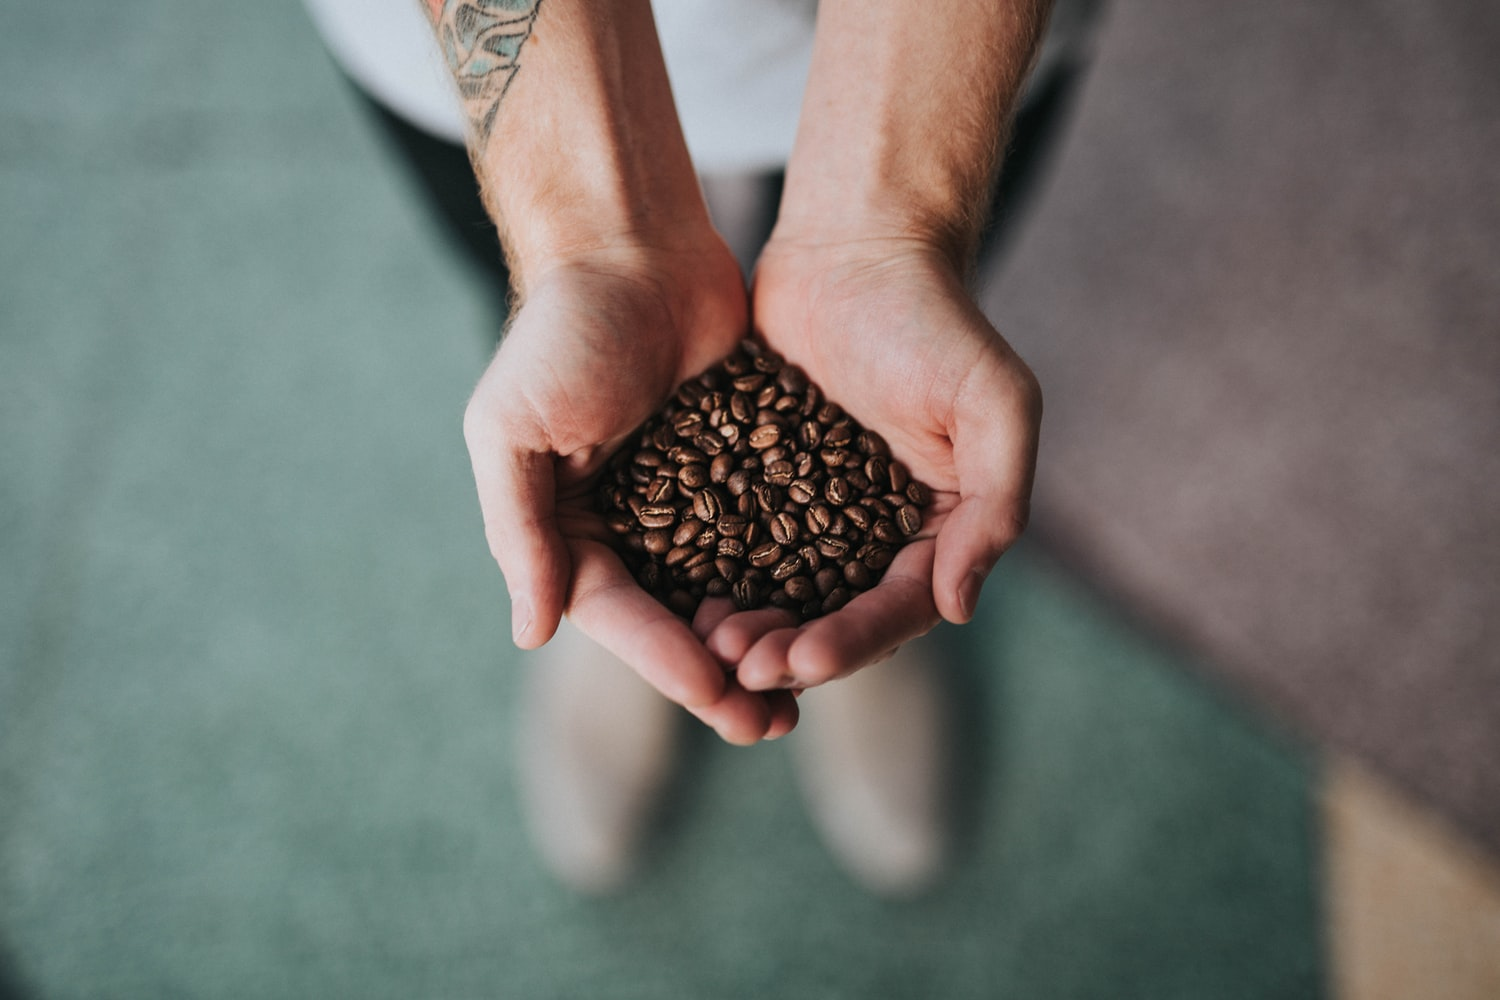 a handful of roasted coffee beans